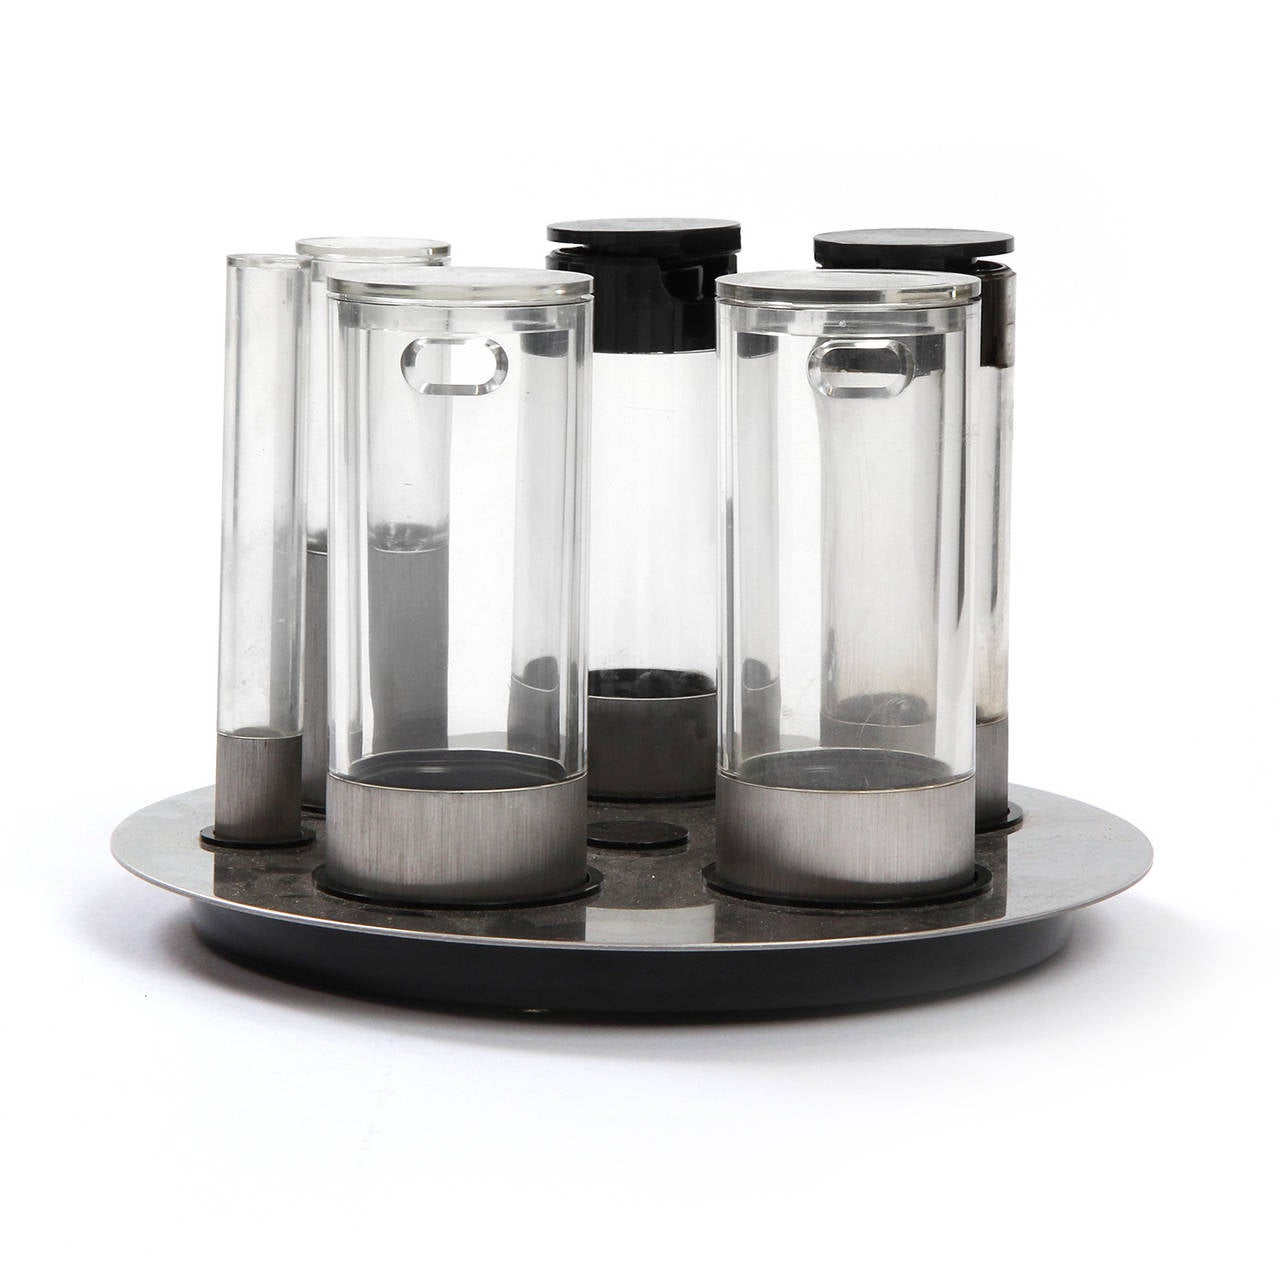 Italian Revolving Condiments Tray by Cini and Nils For Sale